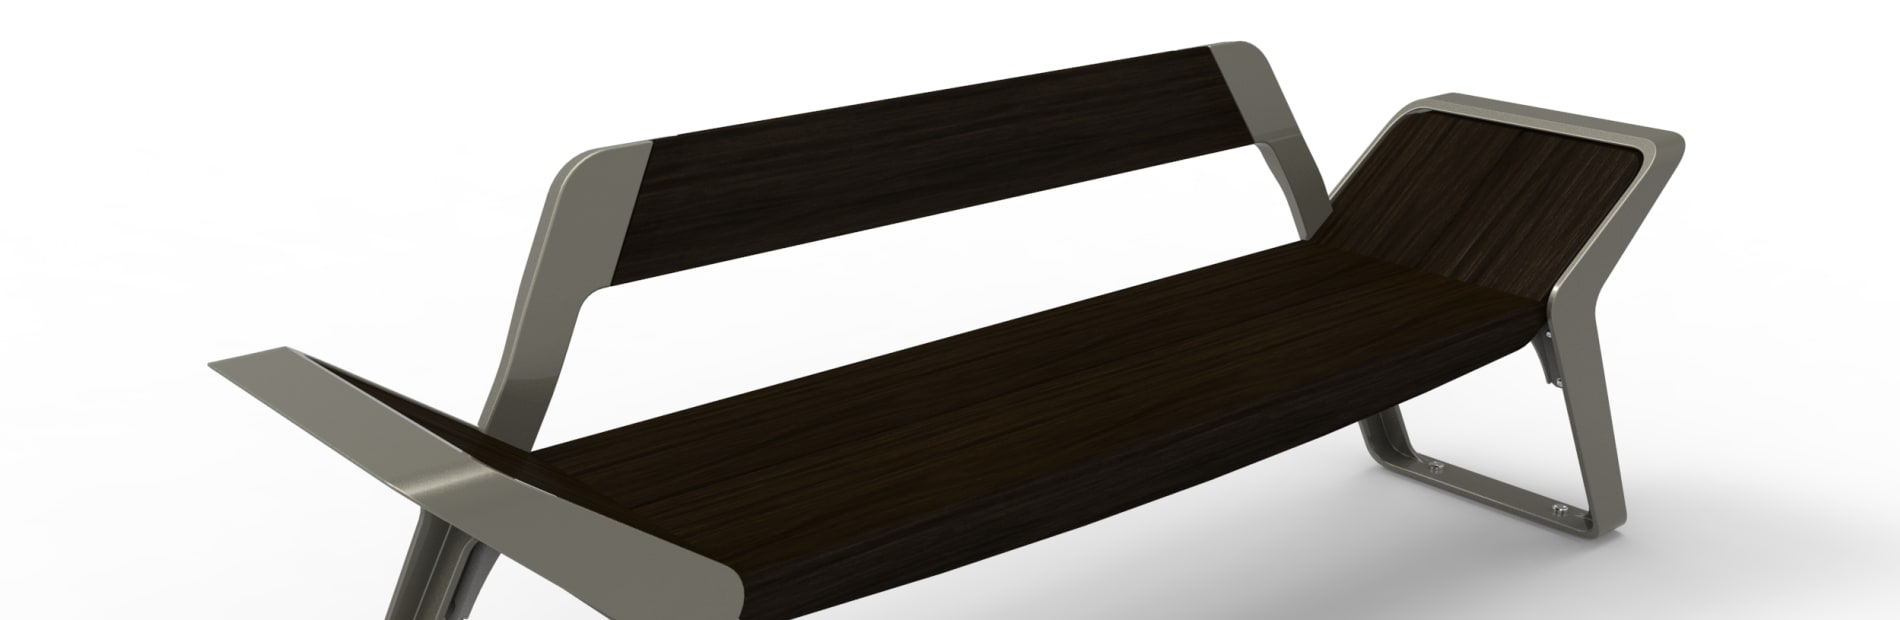 stratic seat - onyx and quartz